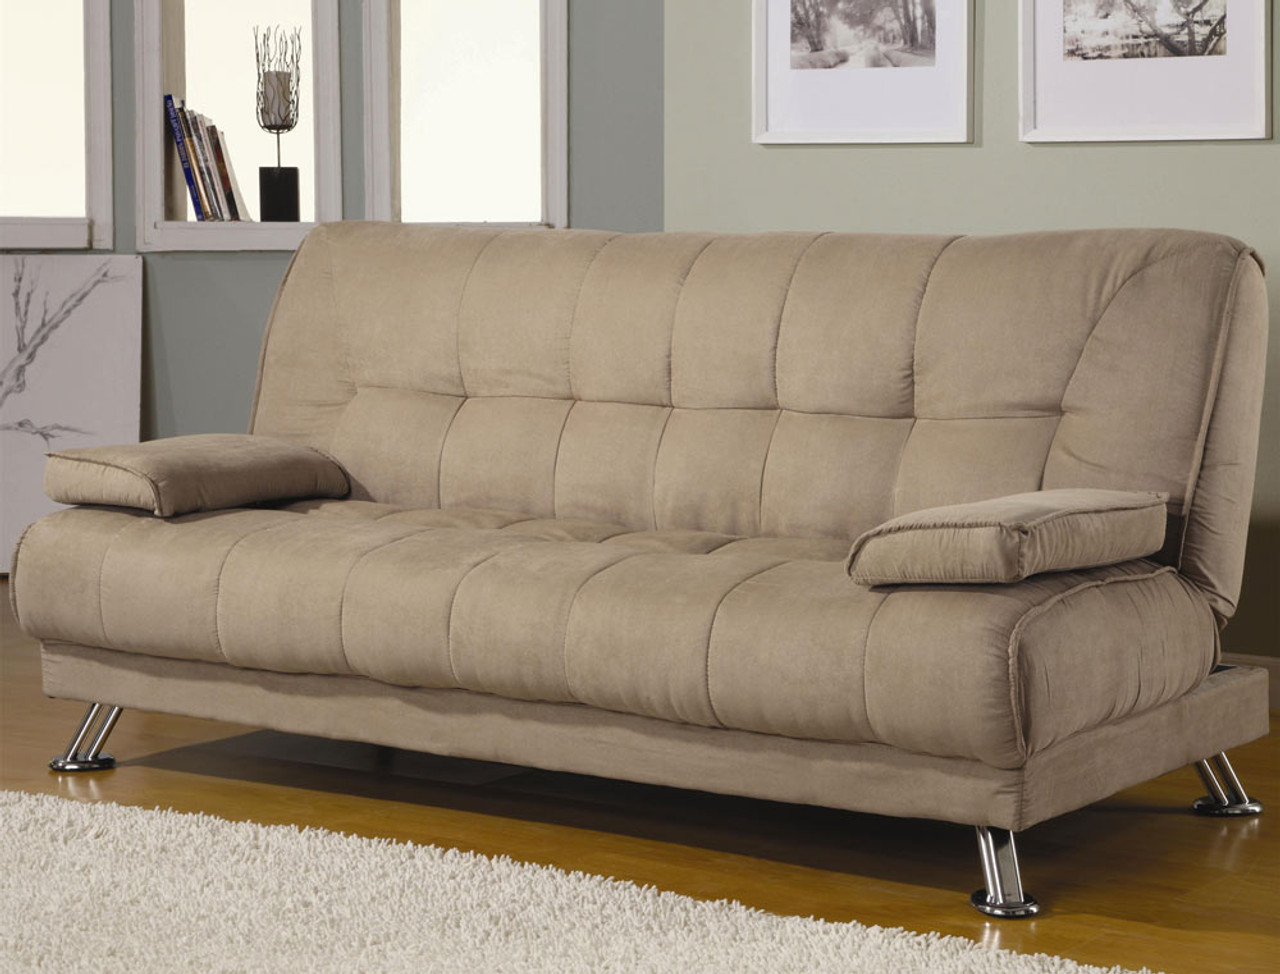 Coaster Braxton Tan Fabric Convertible Sofa Bed Dealbeds Com